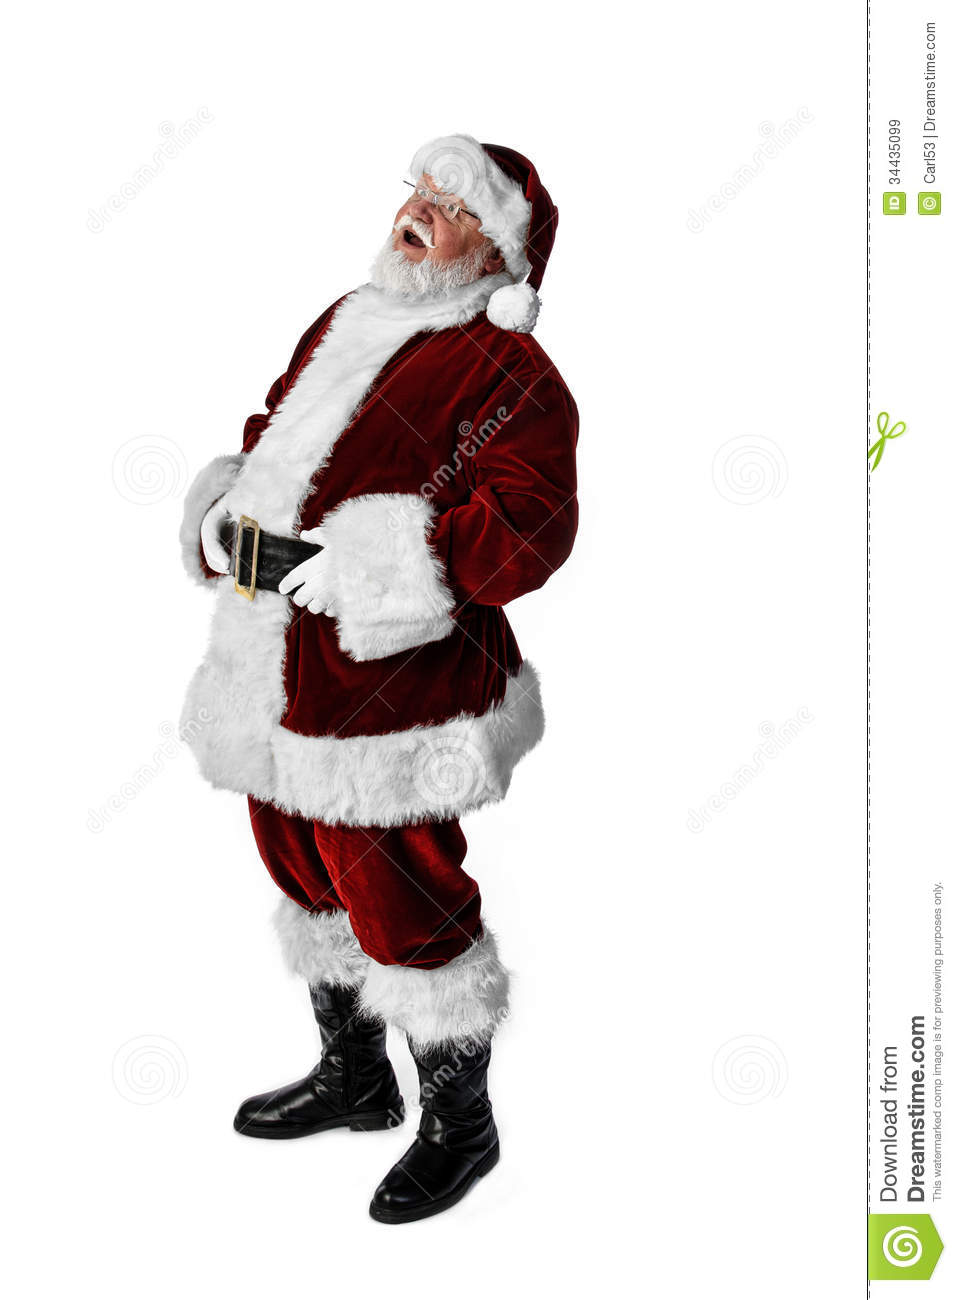 Very Realistic Santa Claus Royalty Free Stock Images